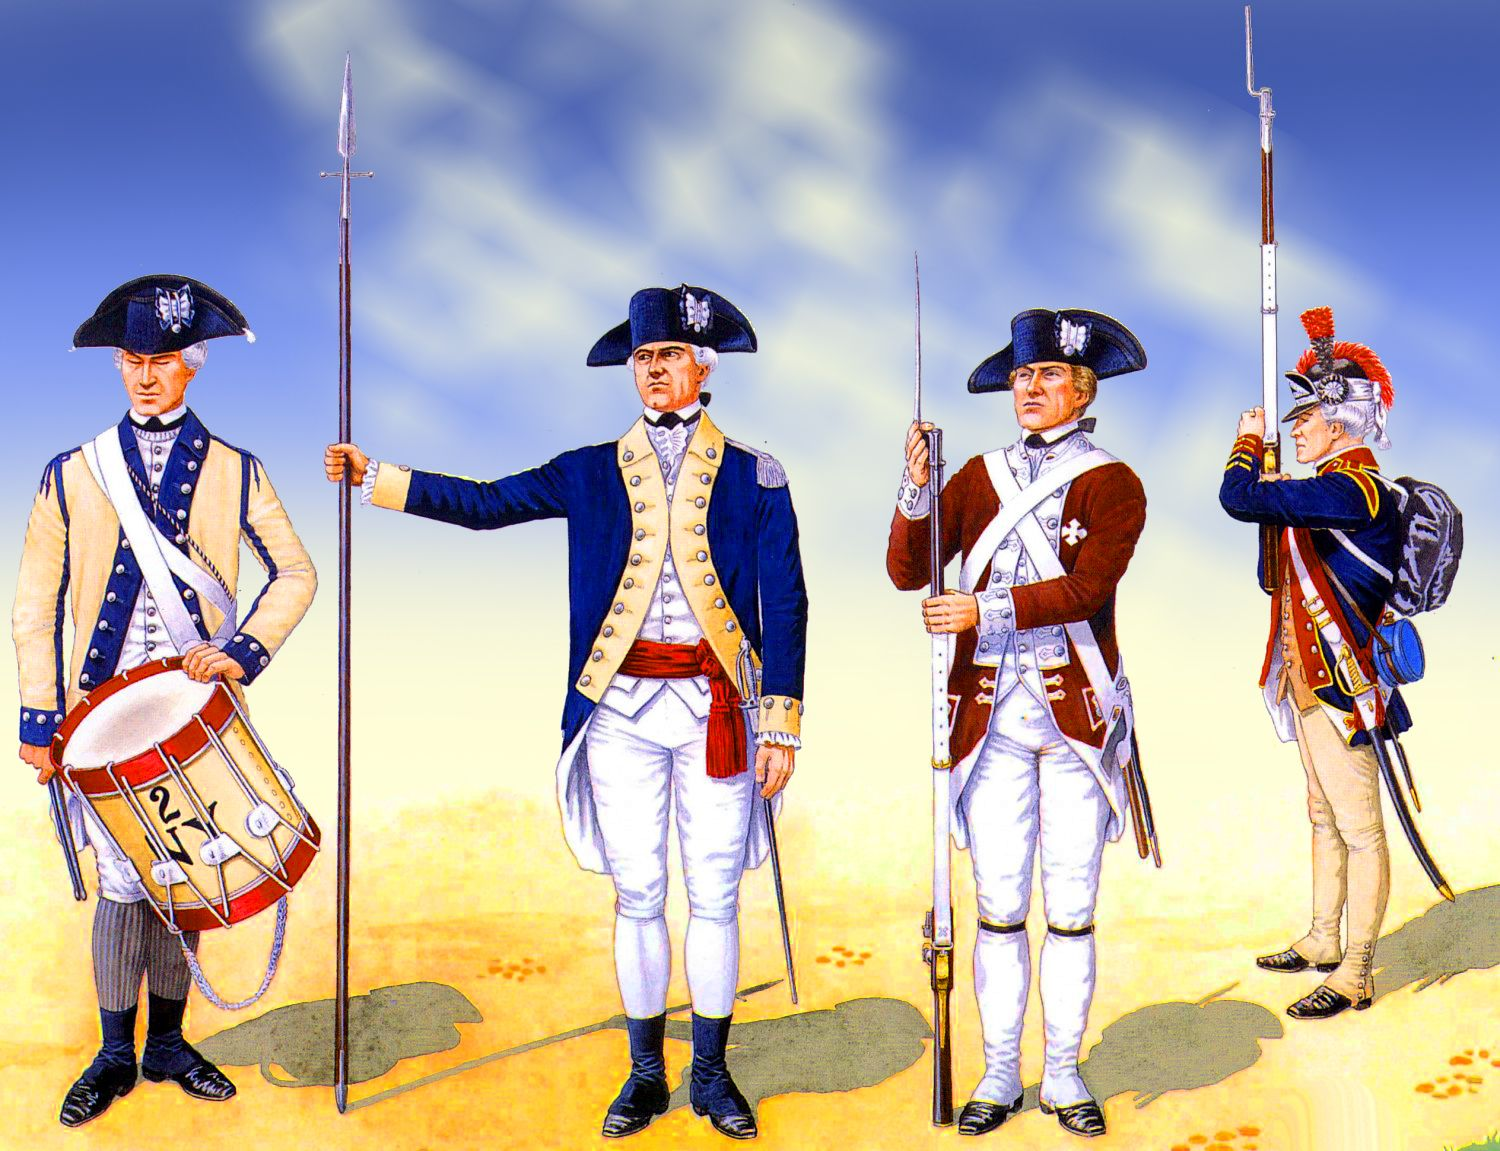 New Hampshire Regiment with Pennsylbanian and New York Regiments